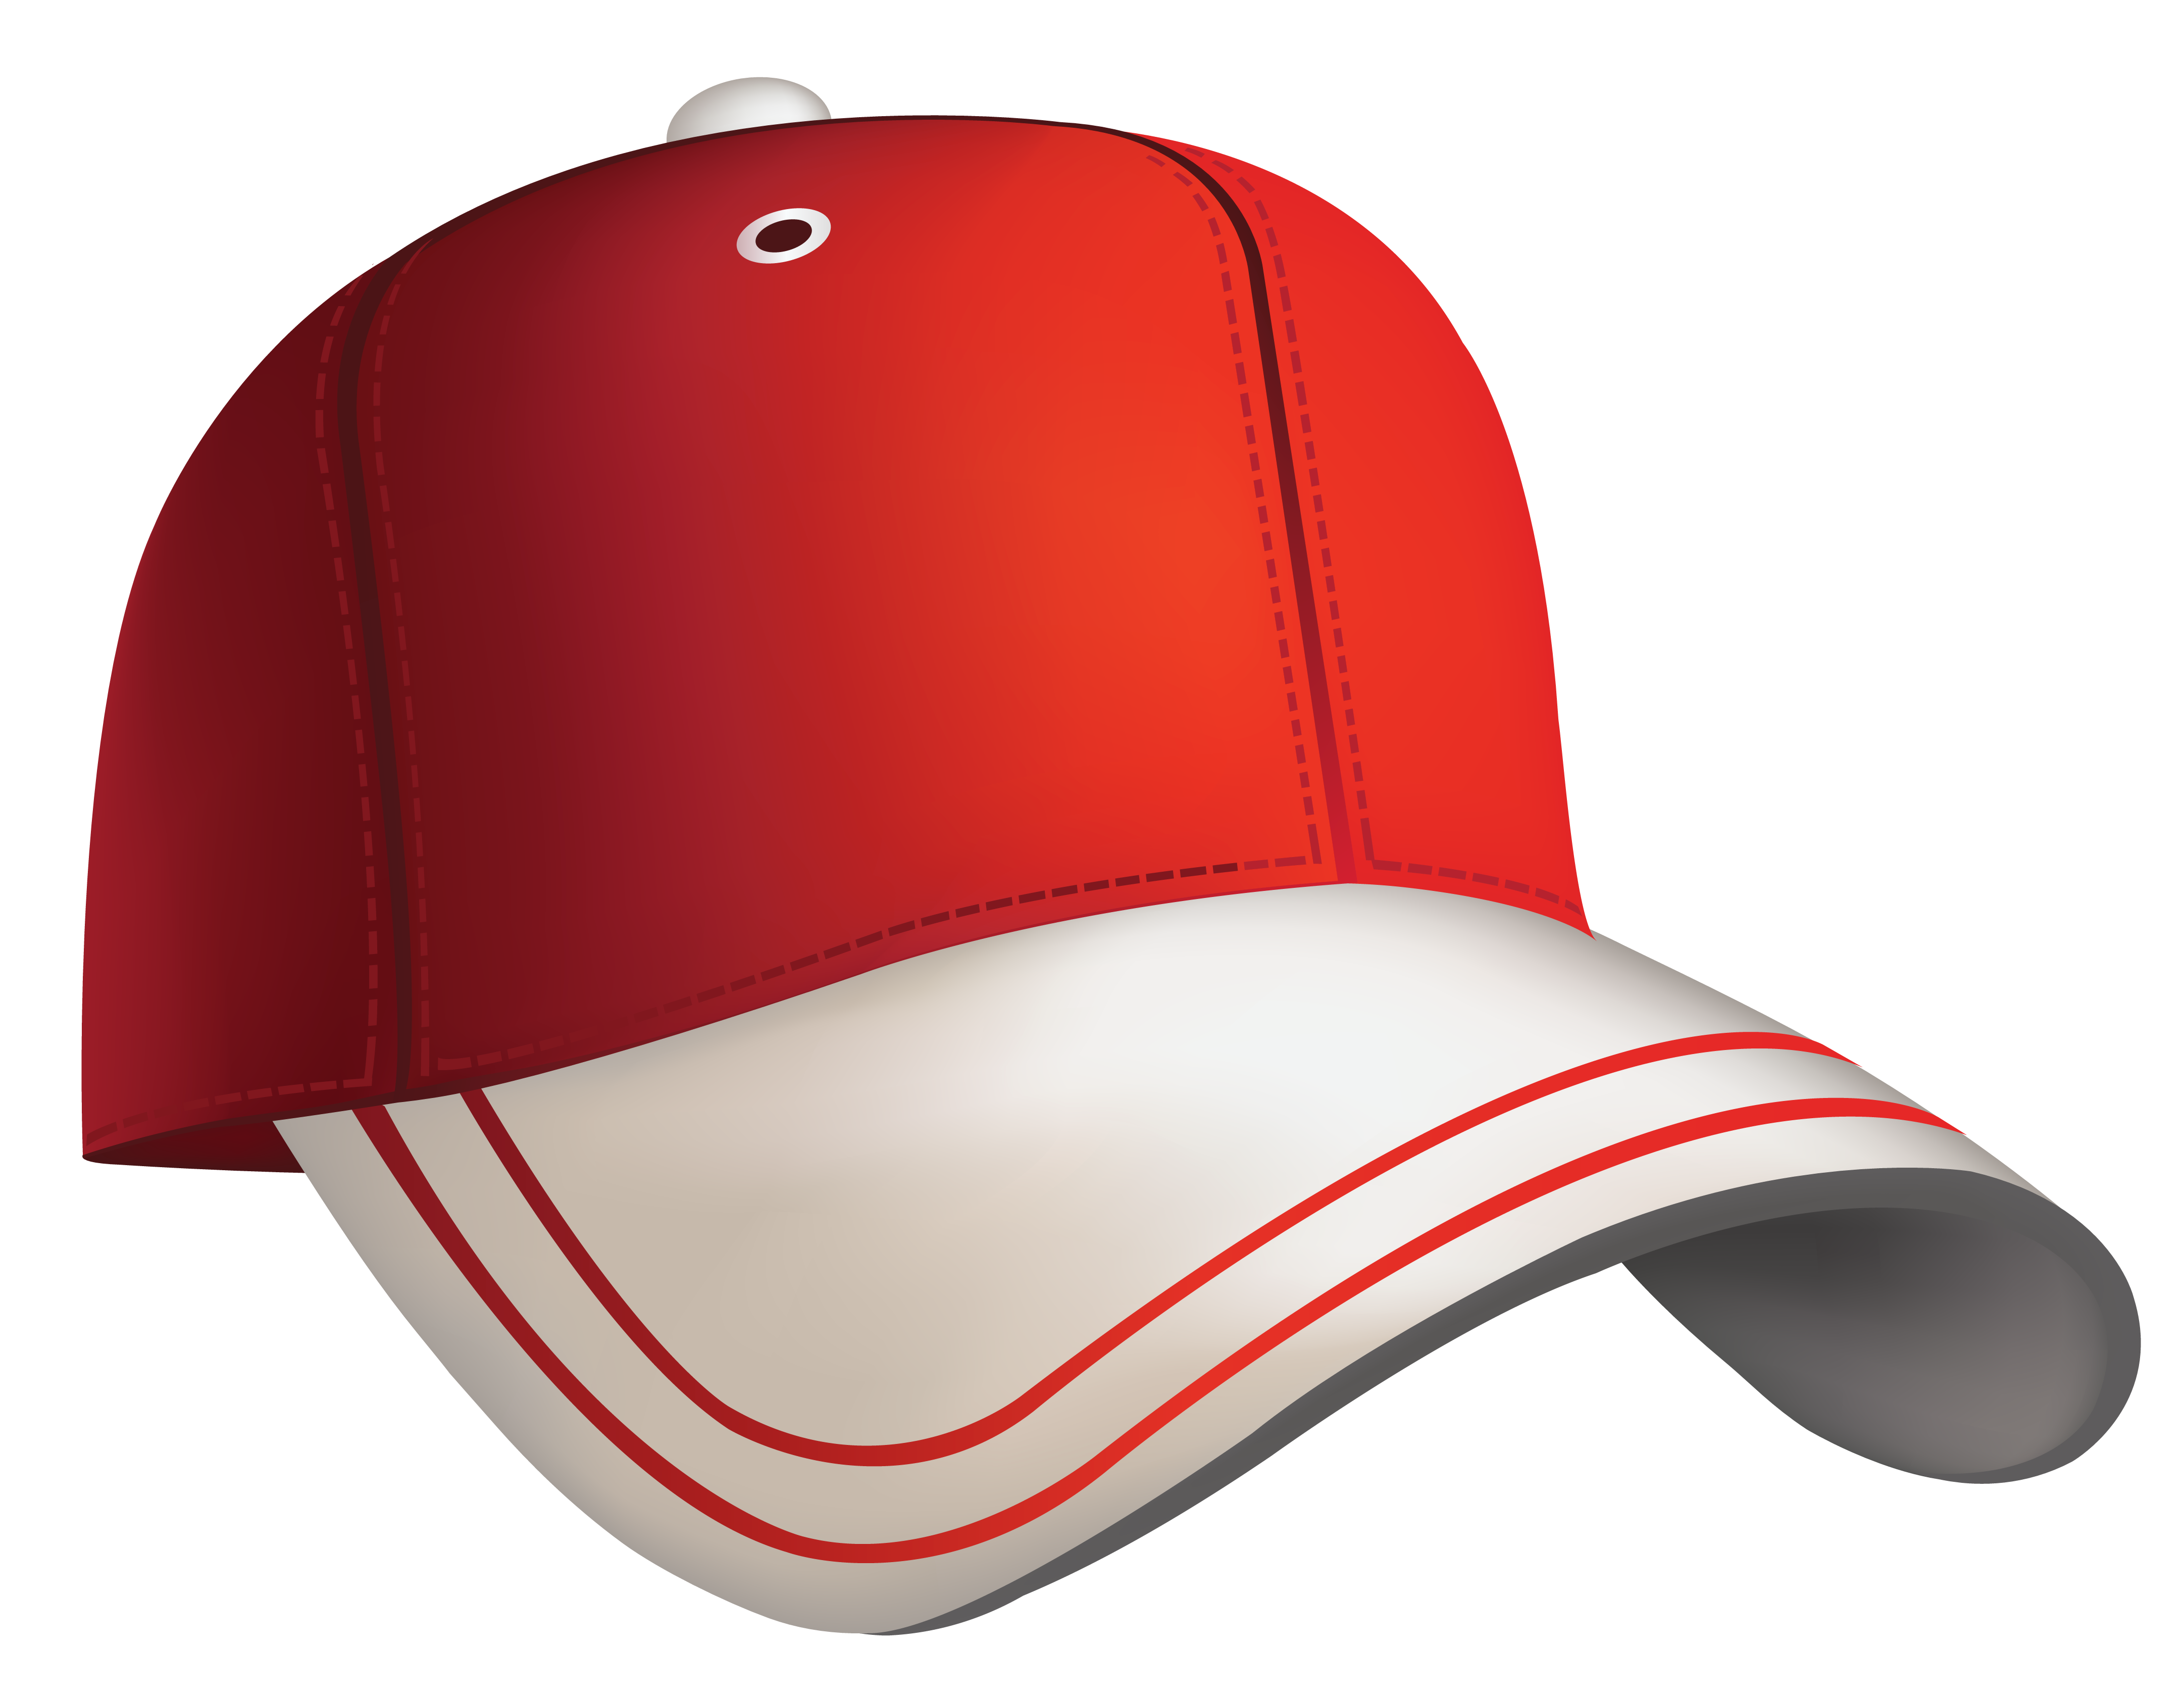 clipart black and white library Cap clipart. Red baseball